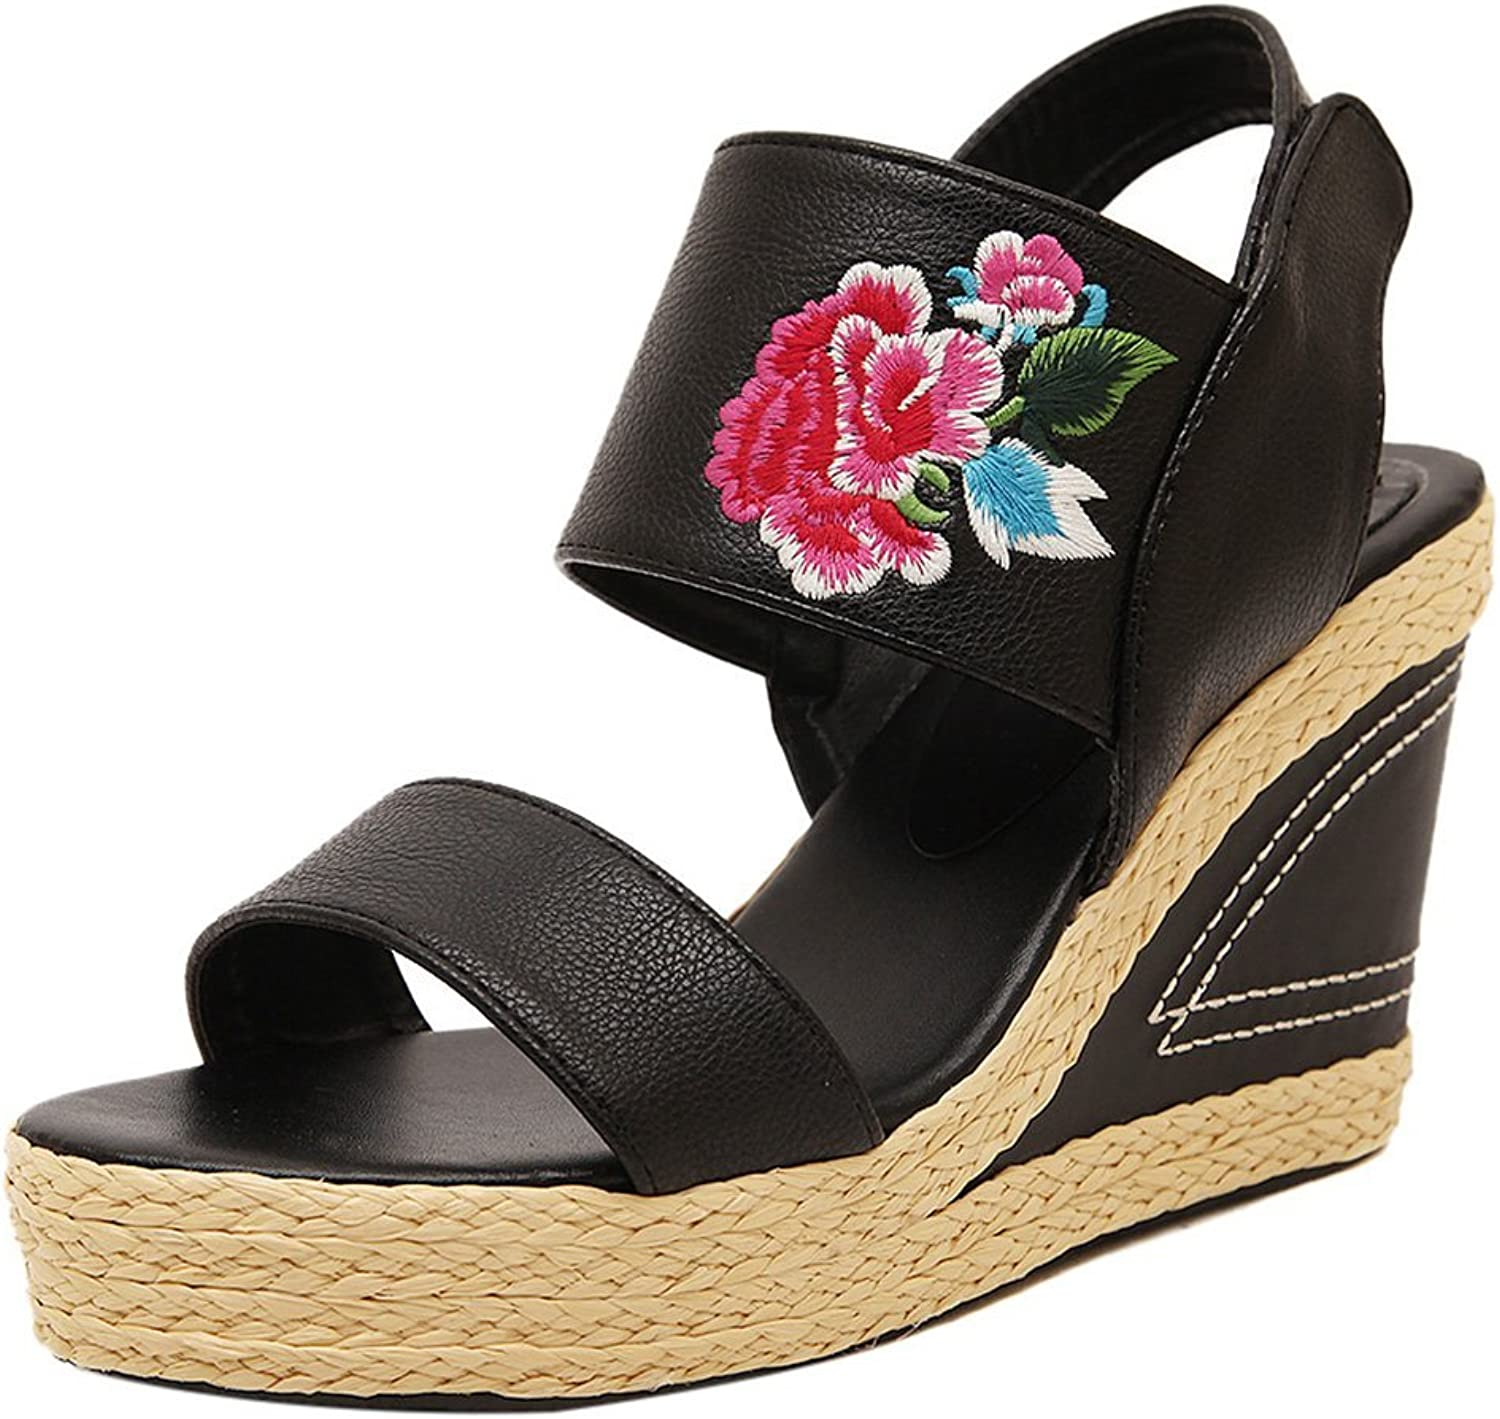 ONCEFIRST Women's Embroidery Flower Wedge Sandal